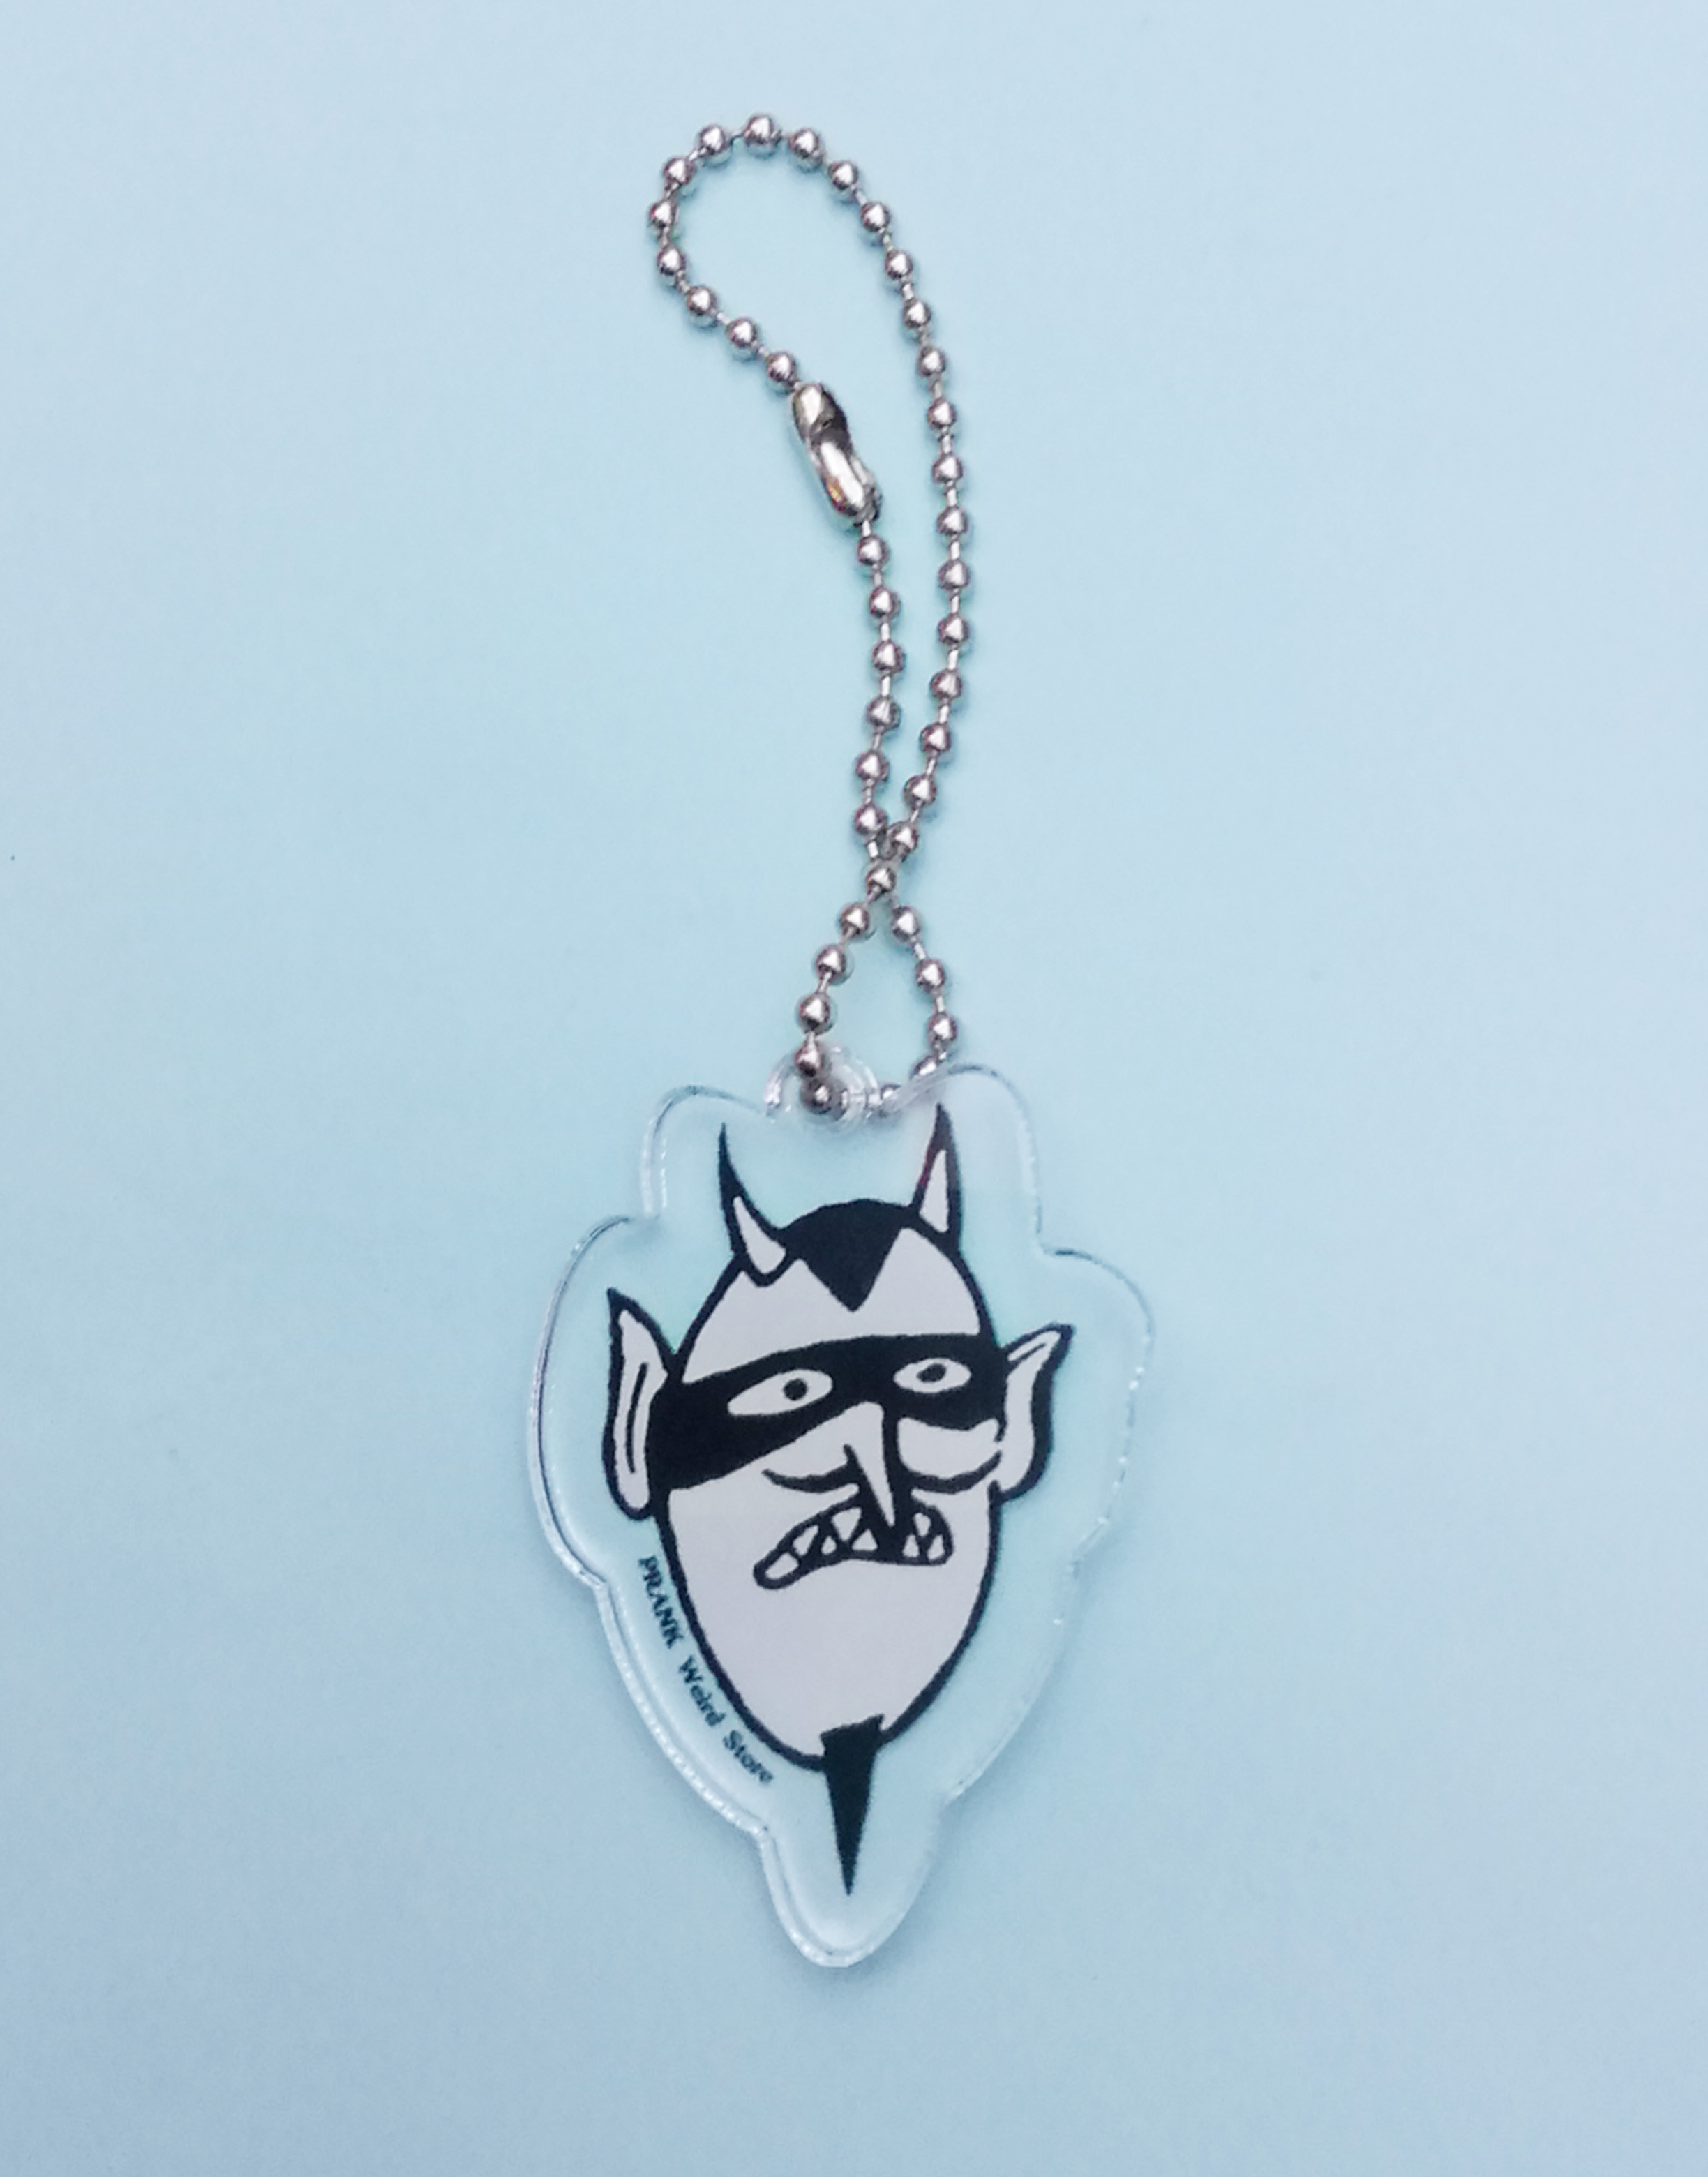 PRANK DEVIL Key Chain